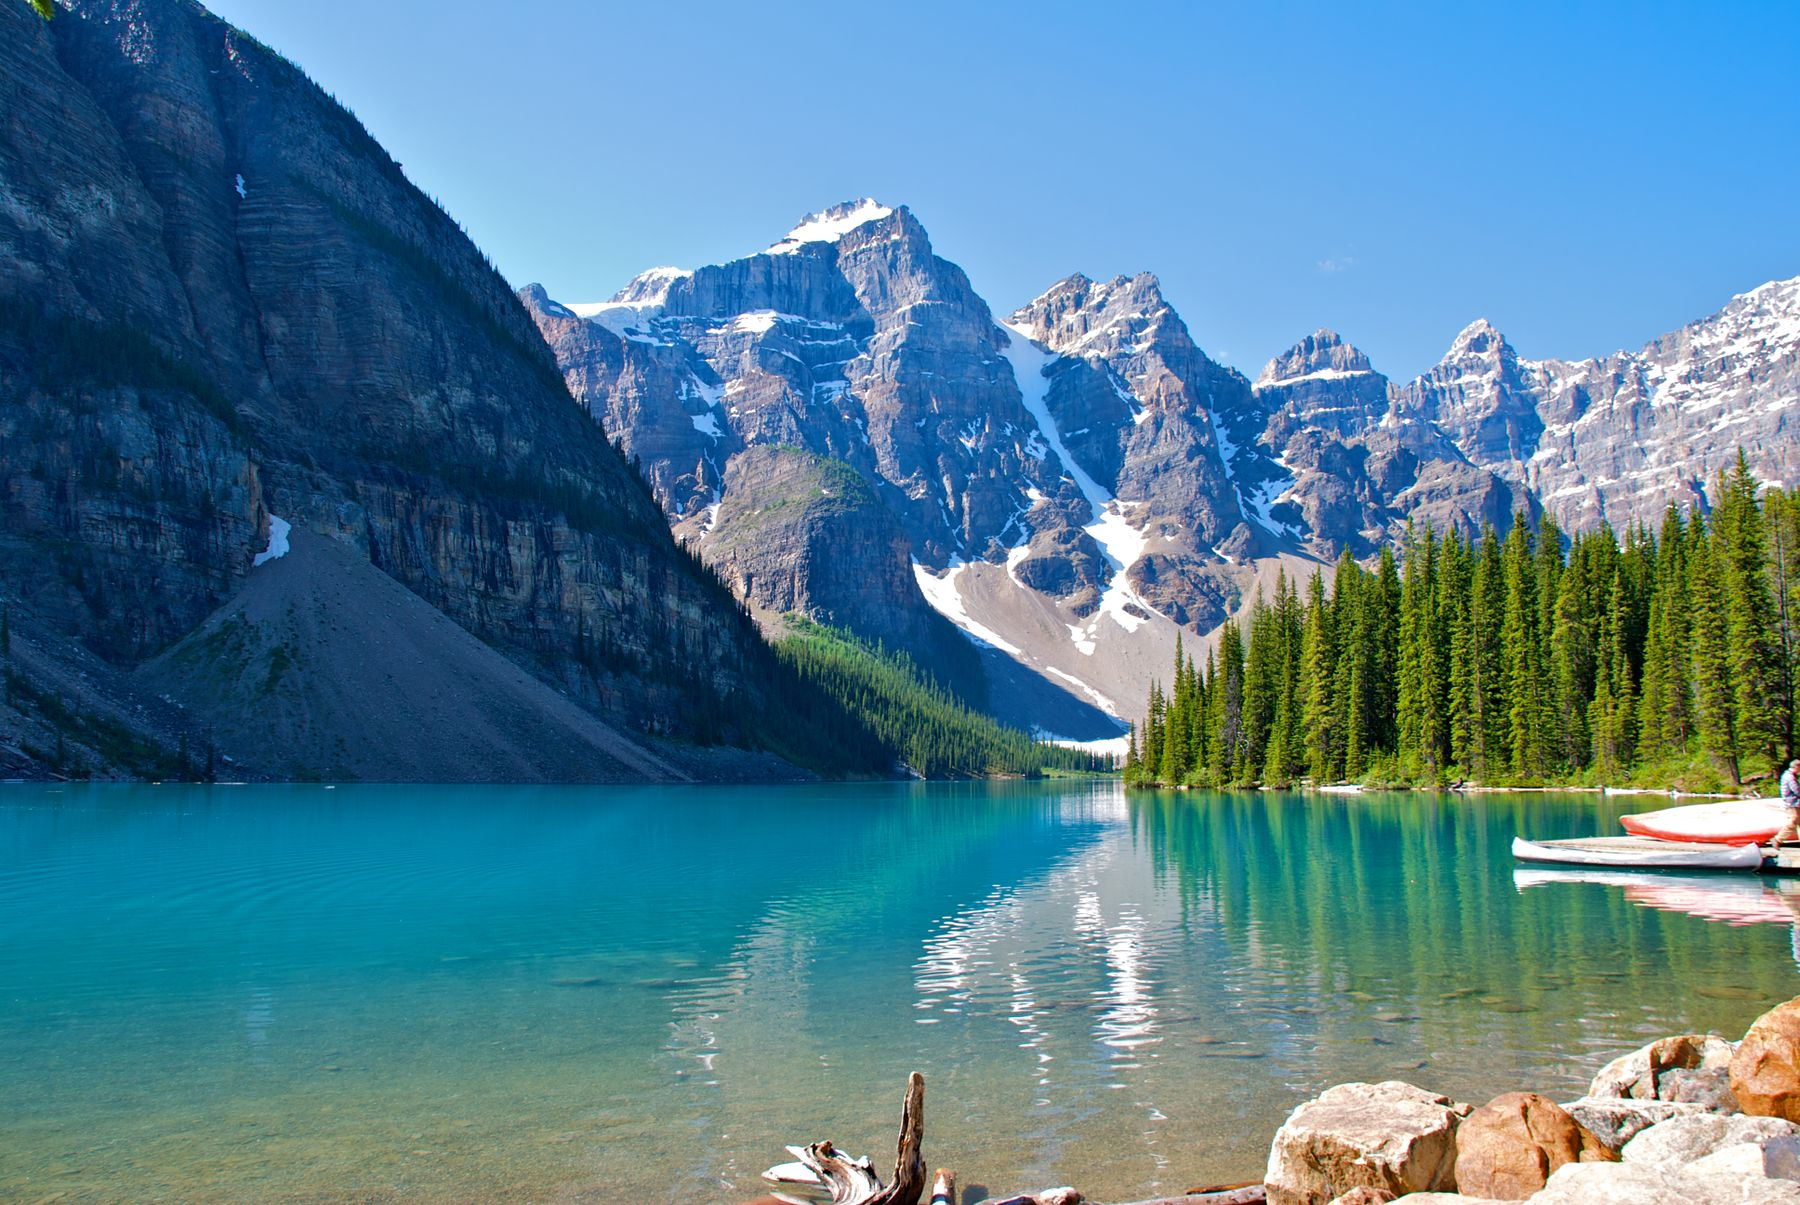 Jasper or Banff? If you're headed during the summer, consider Jasper for less crowds.